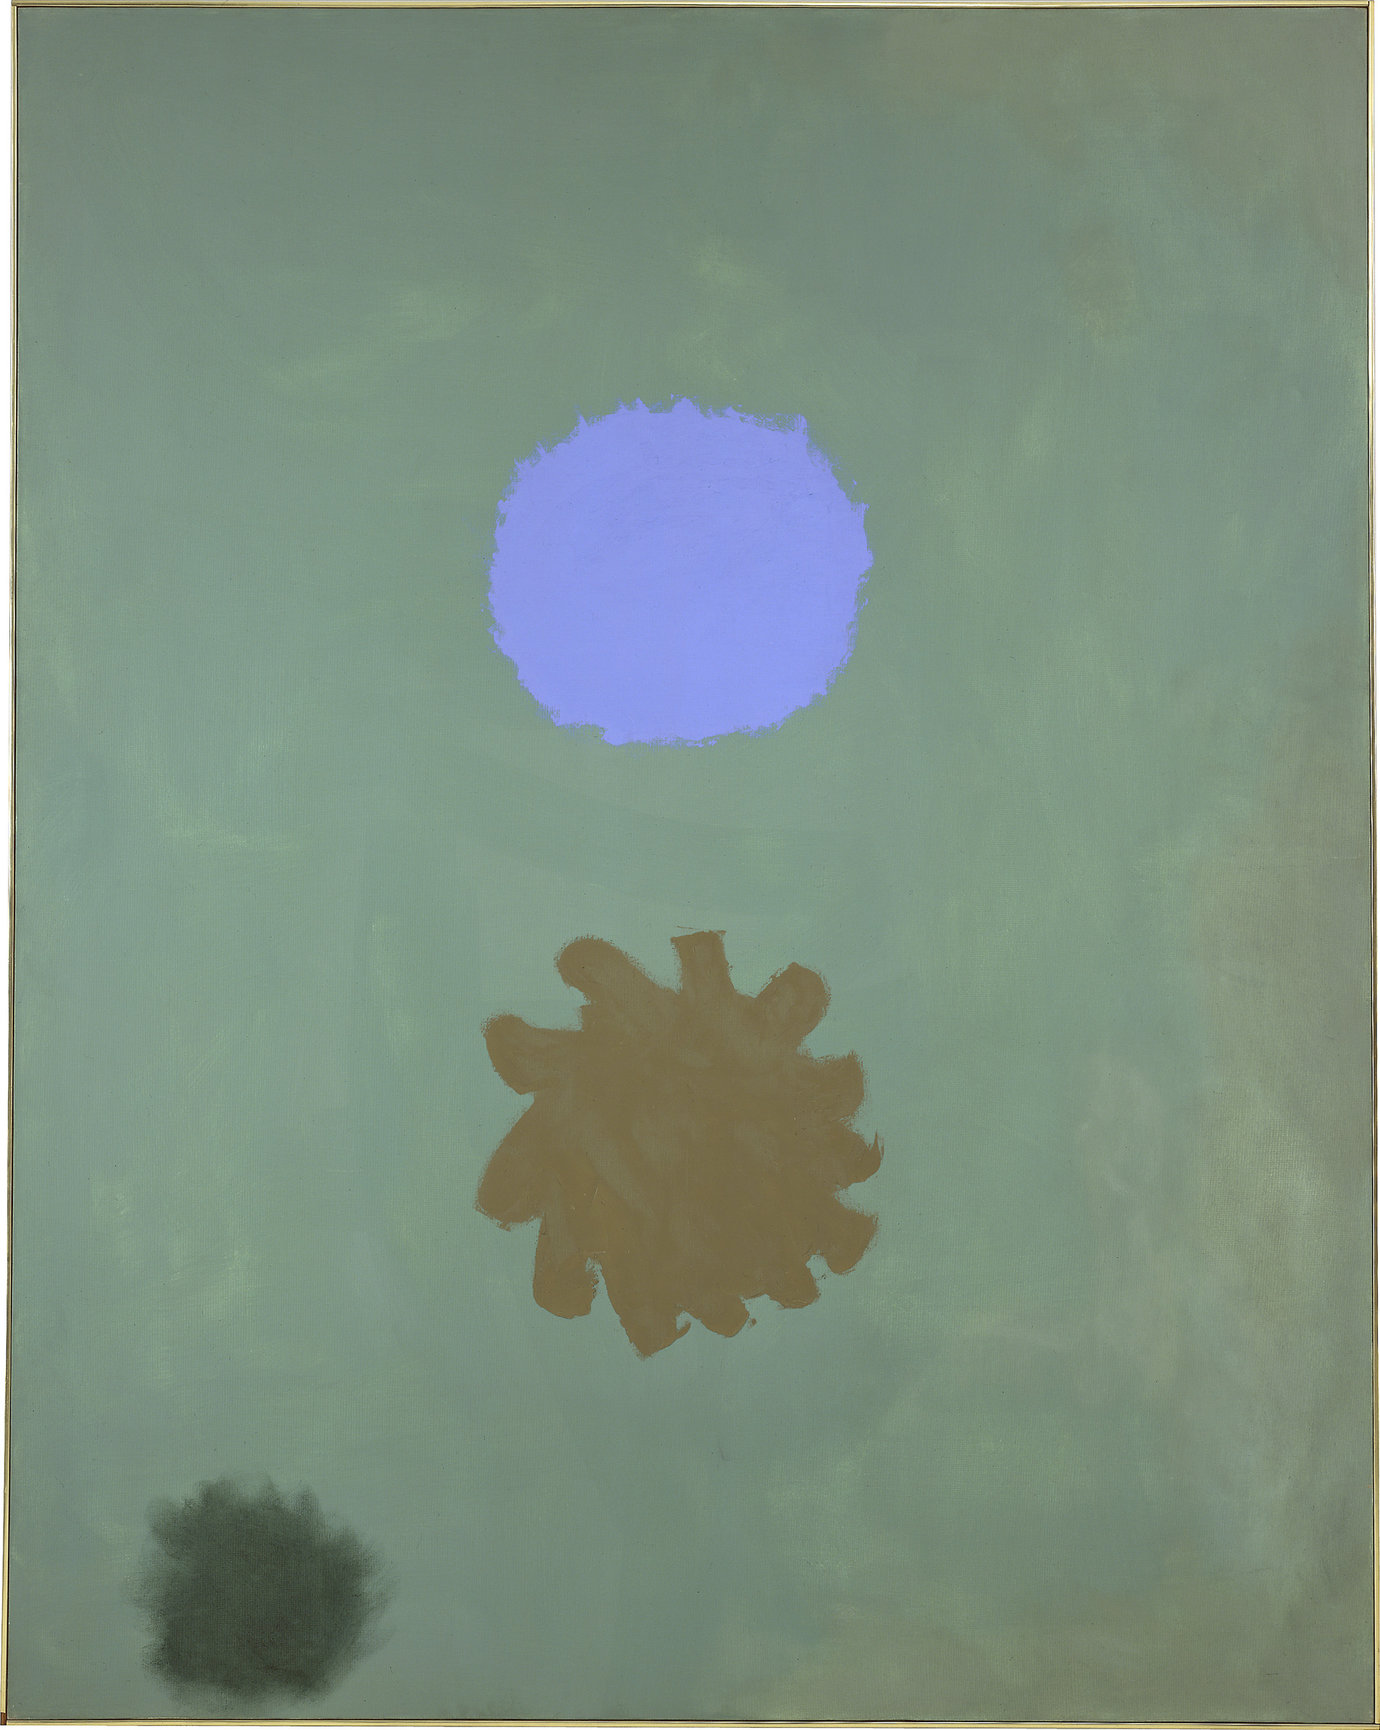 ", 1962. Oil on linen, 90"" x 72"" (228.6 cm x 182.9 cm)."